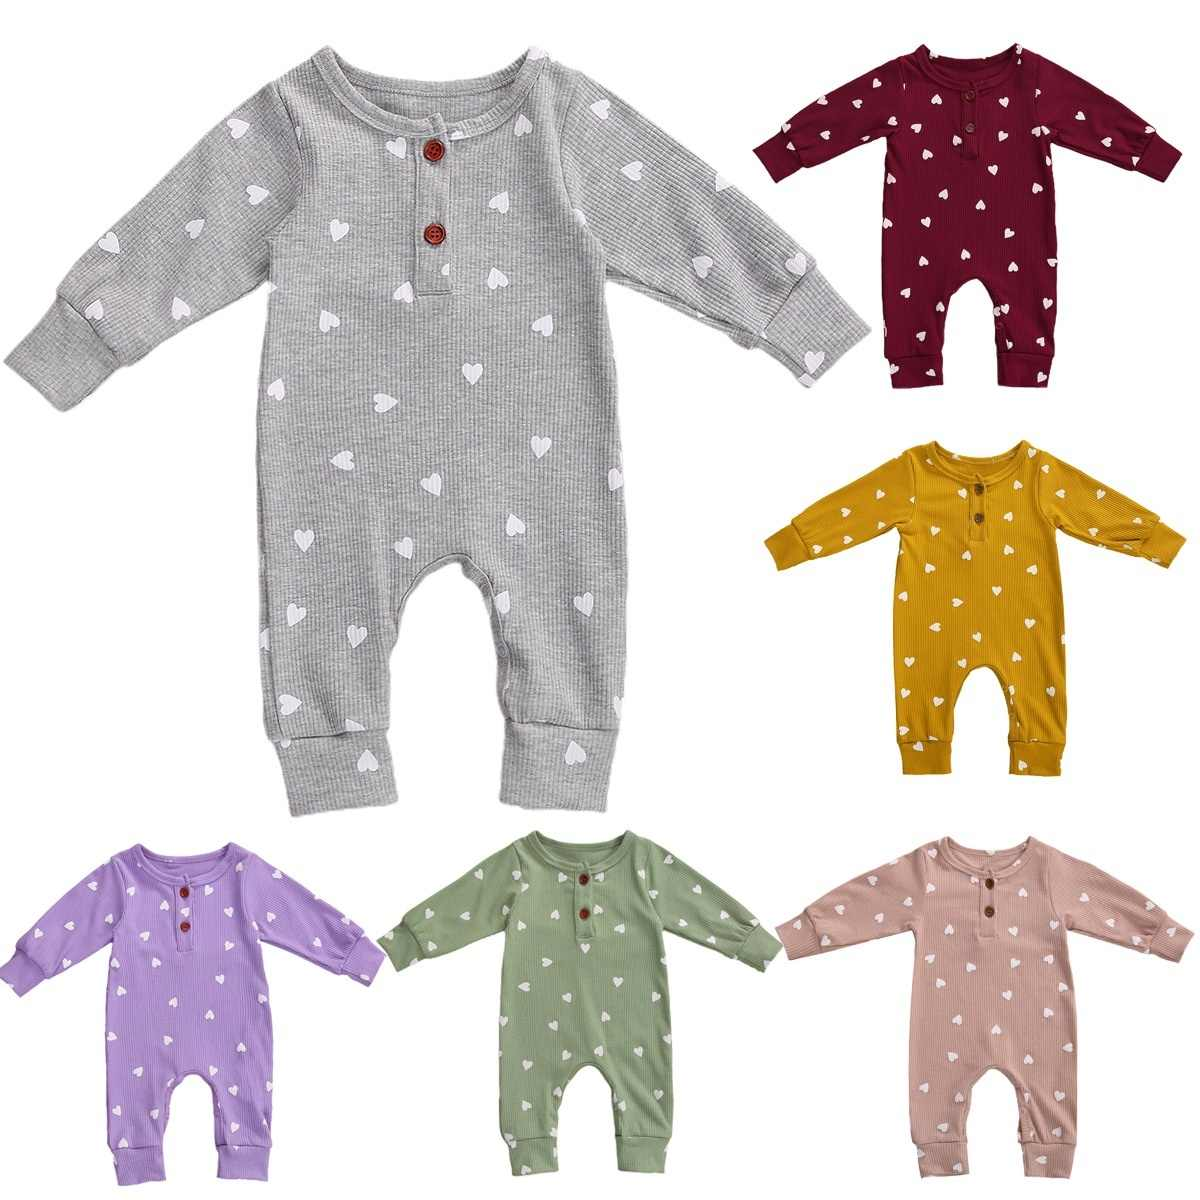 Cotton Newborn Baby Rompers Clothes Long Sleeve Jumpsuit Autumn Fresh Heart Print Buttons One Piece Kids Baby Girls Boys Outfits